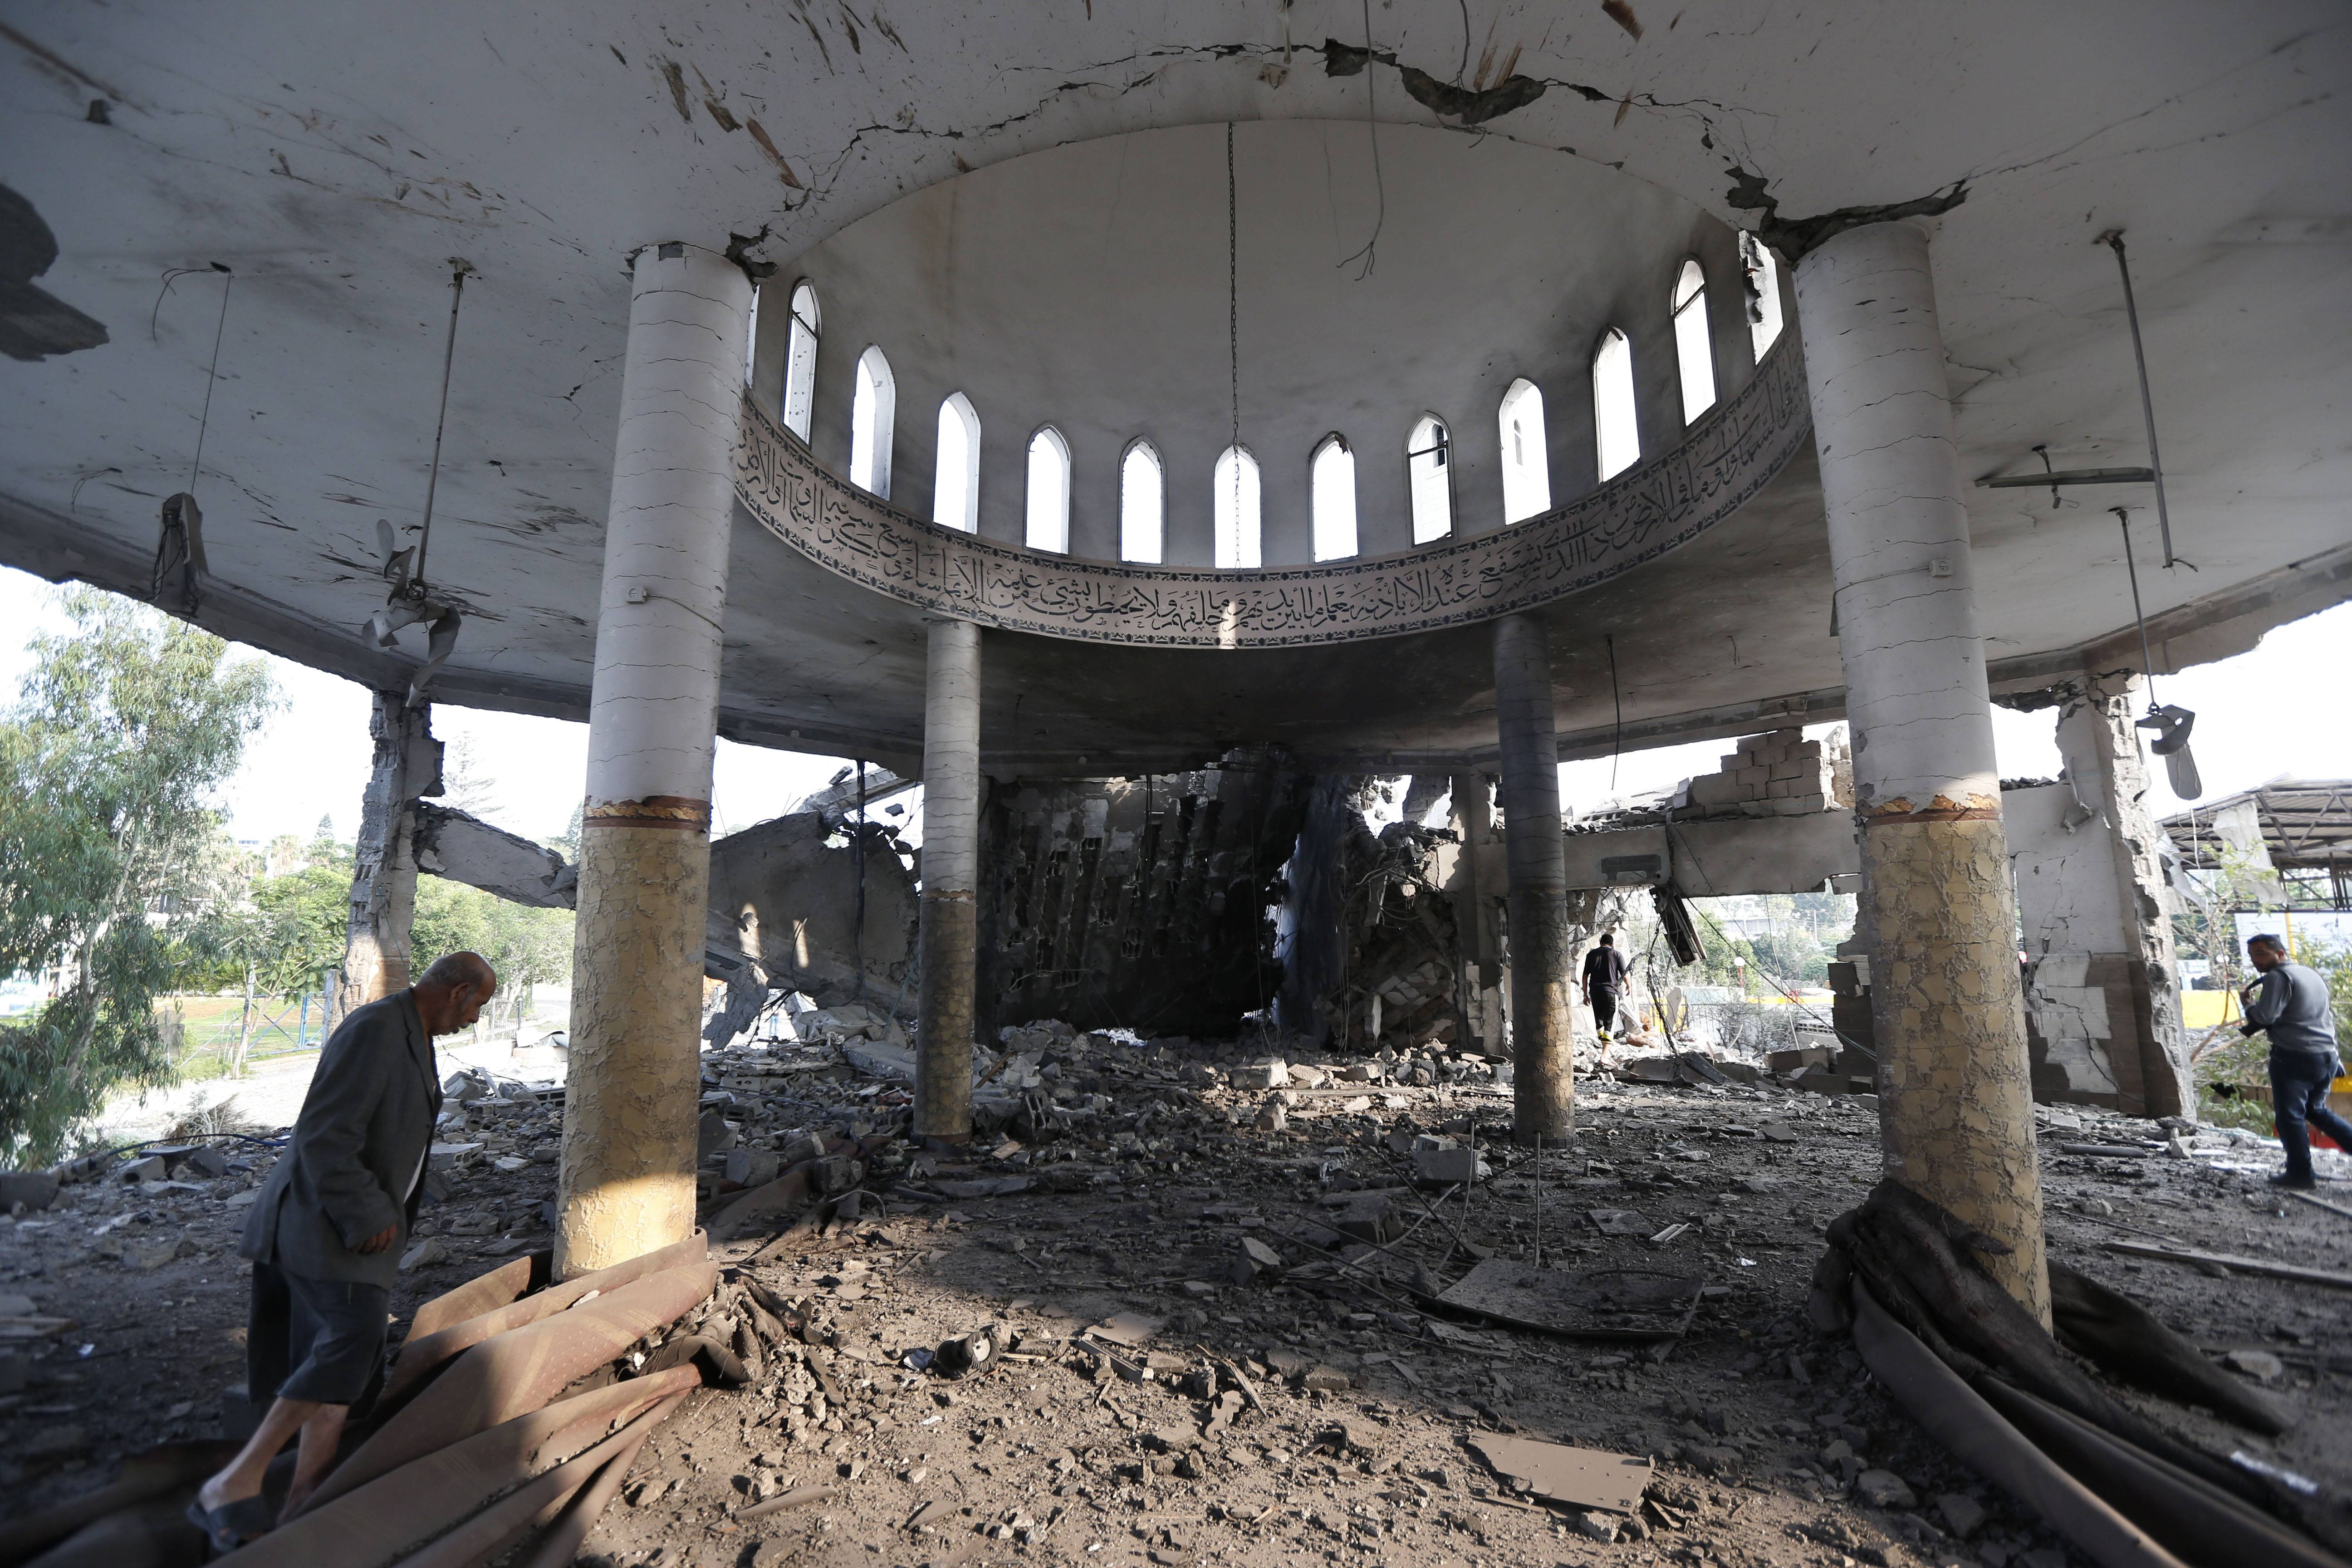 Khaled Sharmi, 67, left, walks inside the Al Aqsa Martyrs mosque destroyed by an overnight Israeli strike in Gaza City Tuesday. Israel bombed five mosques, a sports stadium and the home of the late Hamas military chief across the Gaza Strip early on Tuesday, a Gaza police official said.